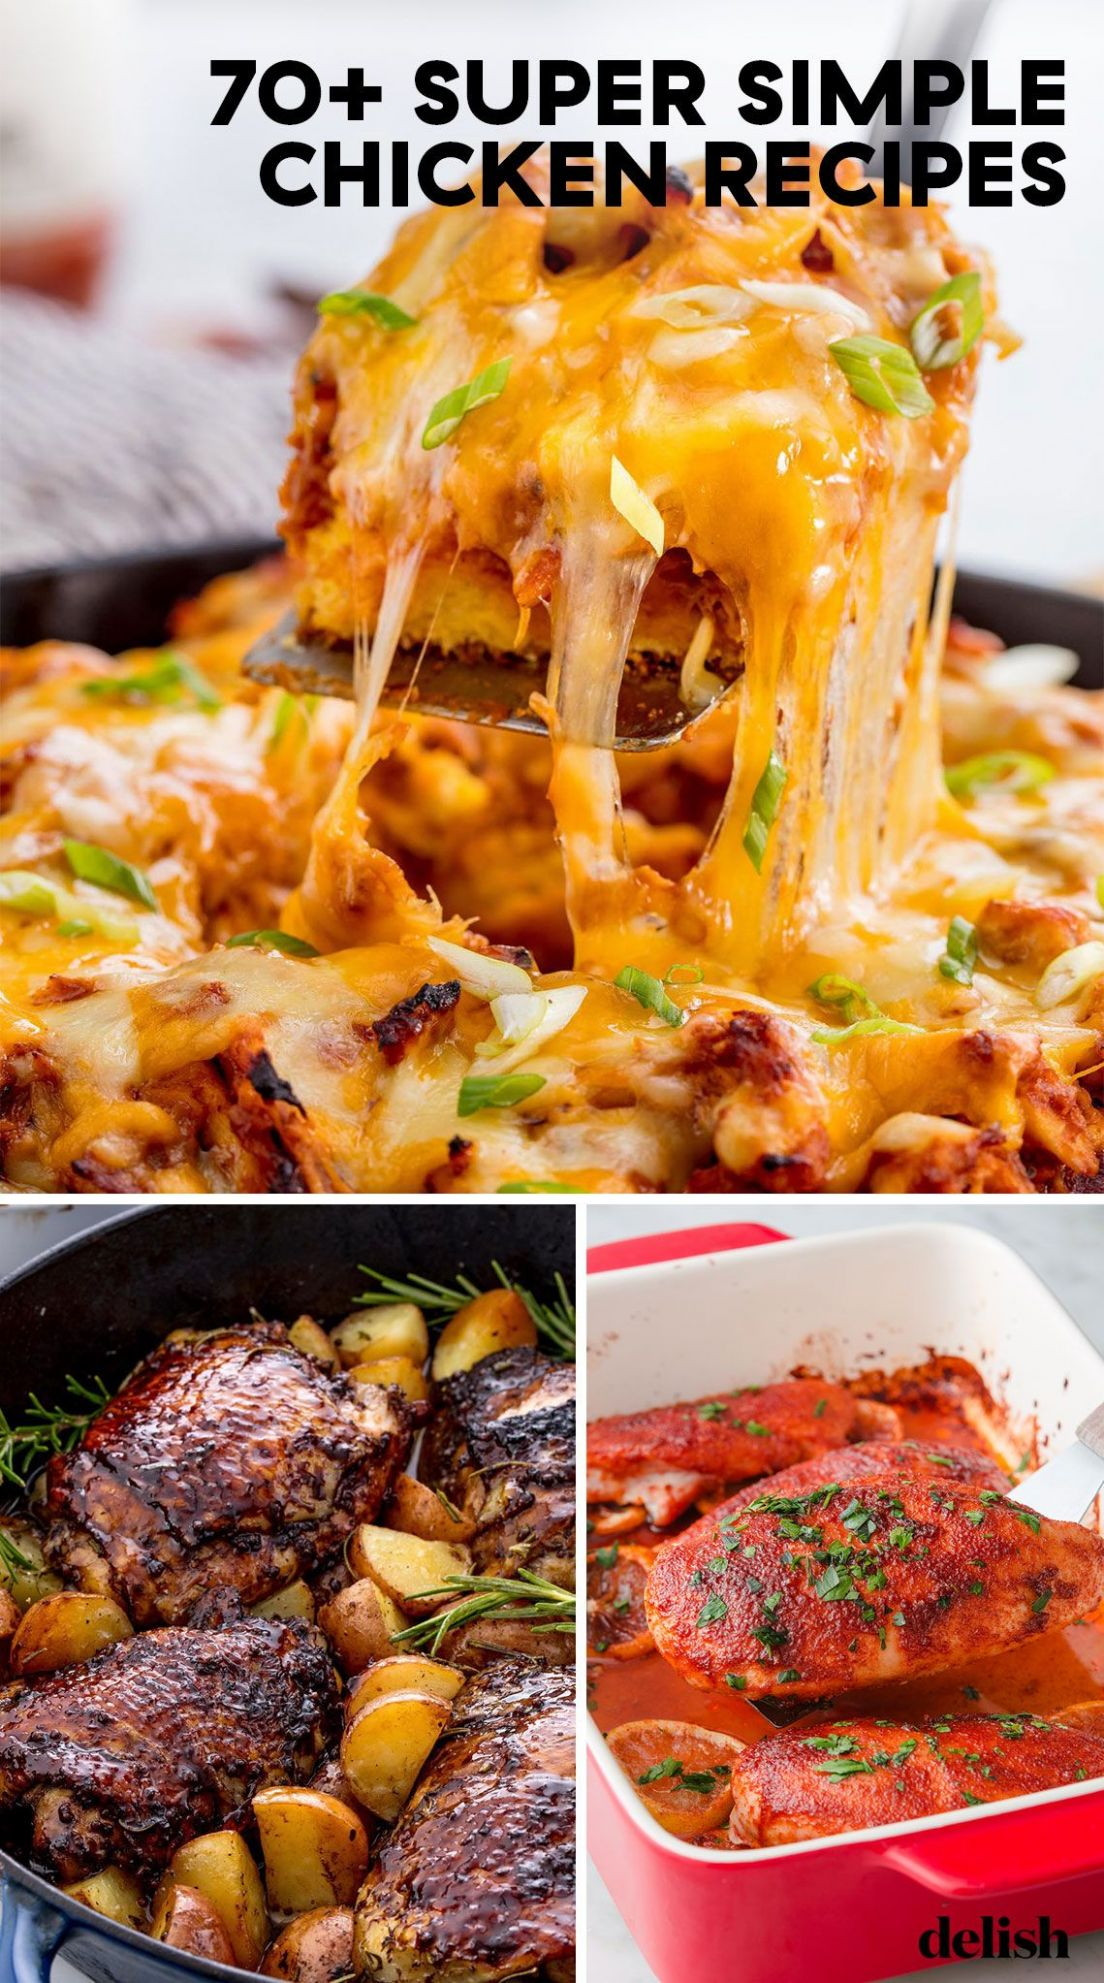 10+ Easy Chicken Dinner Recipes - Simple Ideas for Chicken Dishes - Simple Recipes Of Chicken